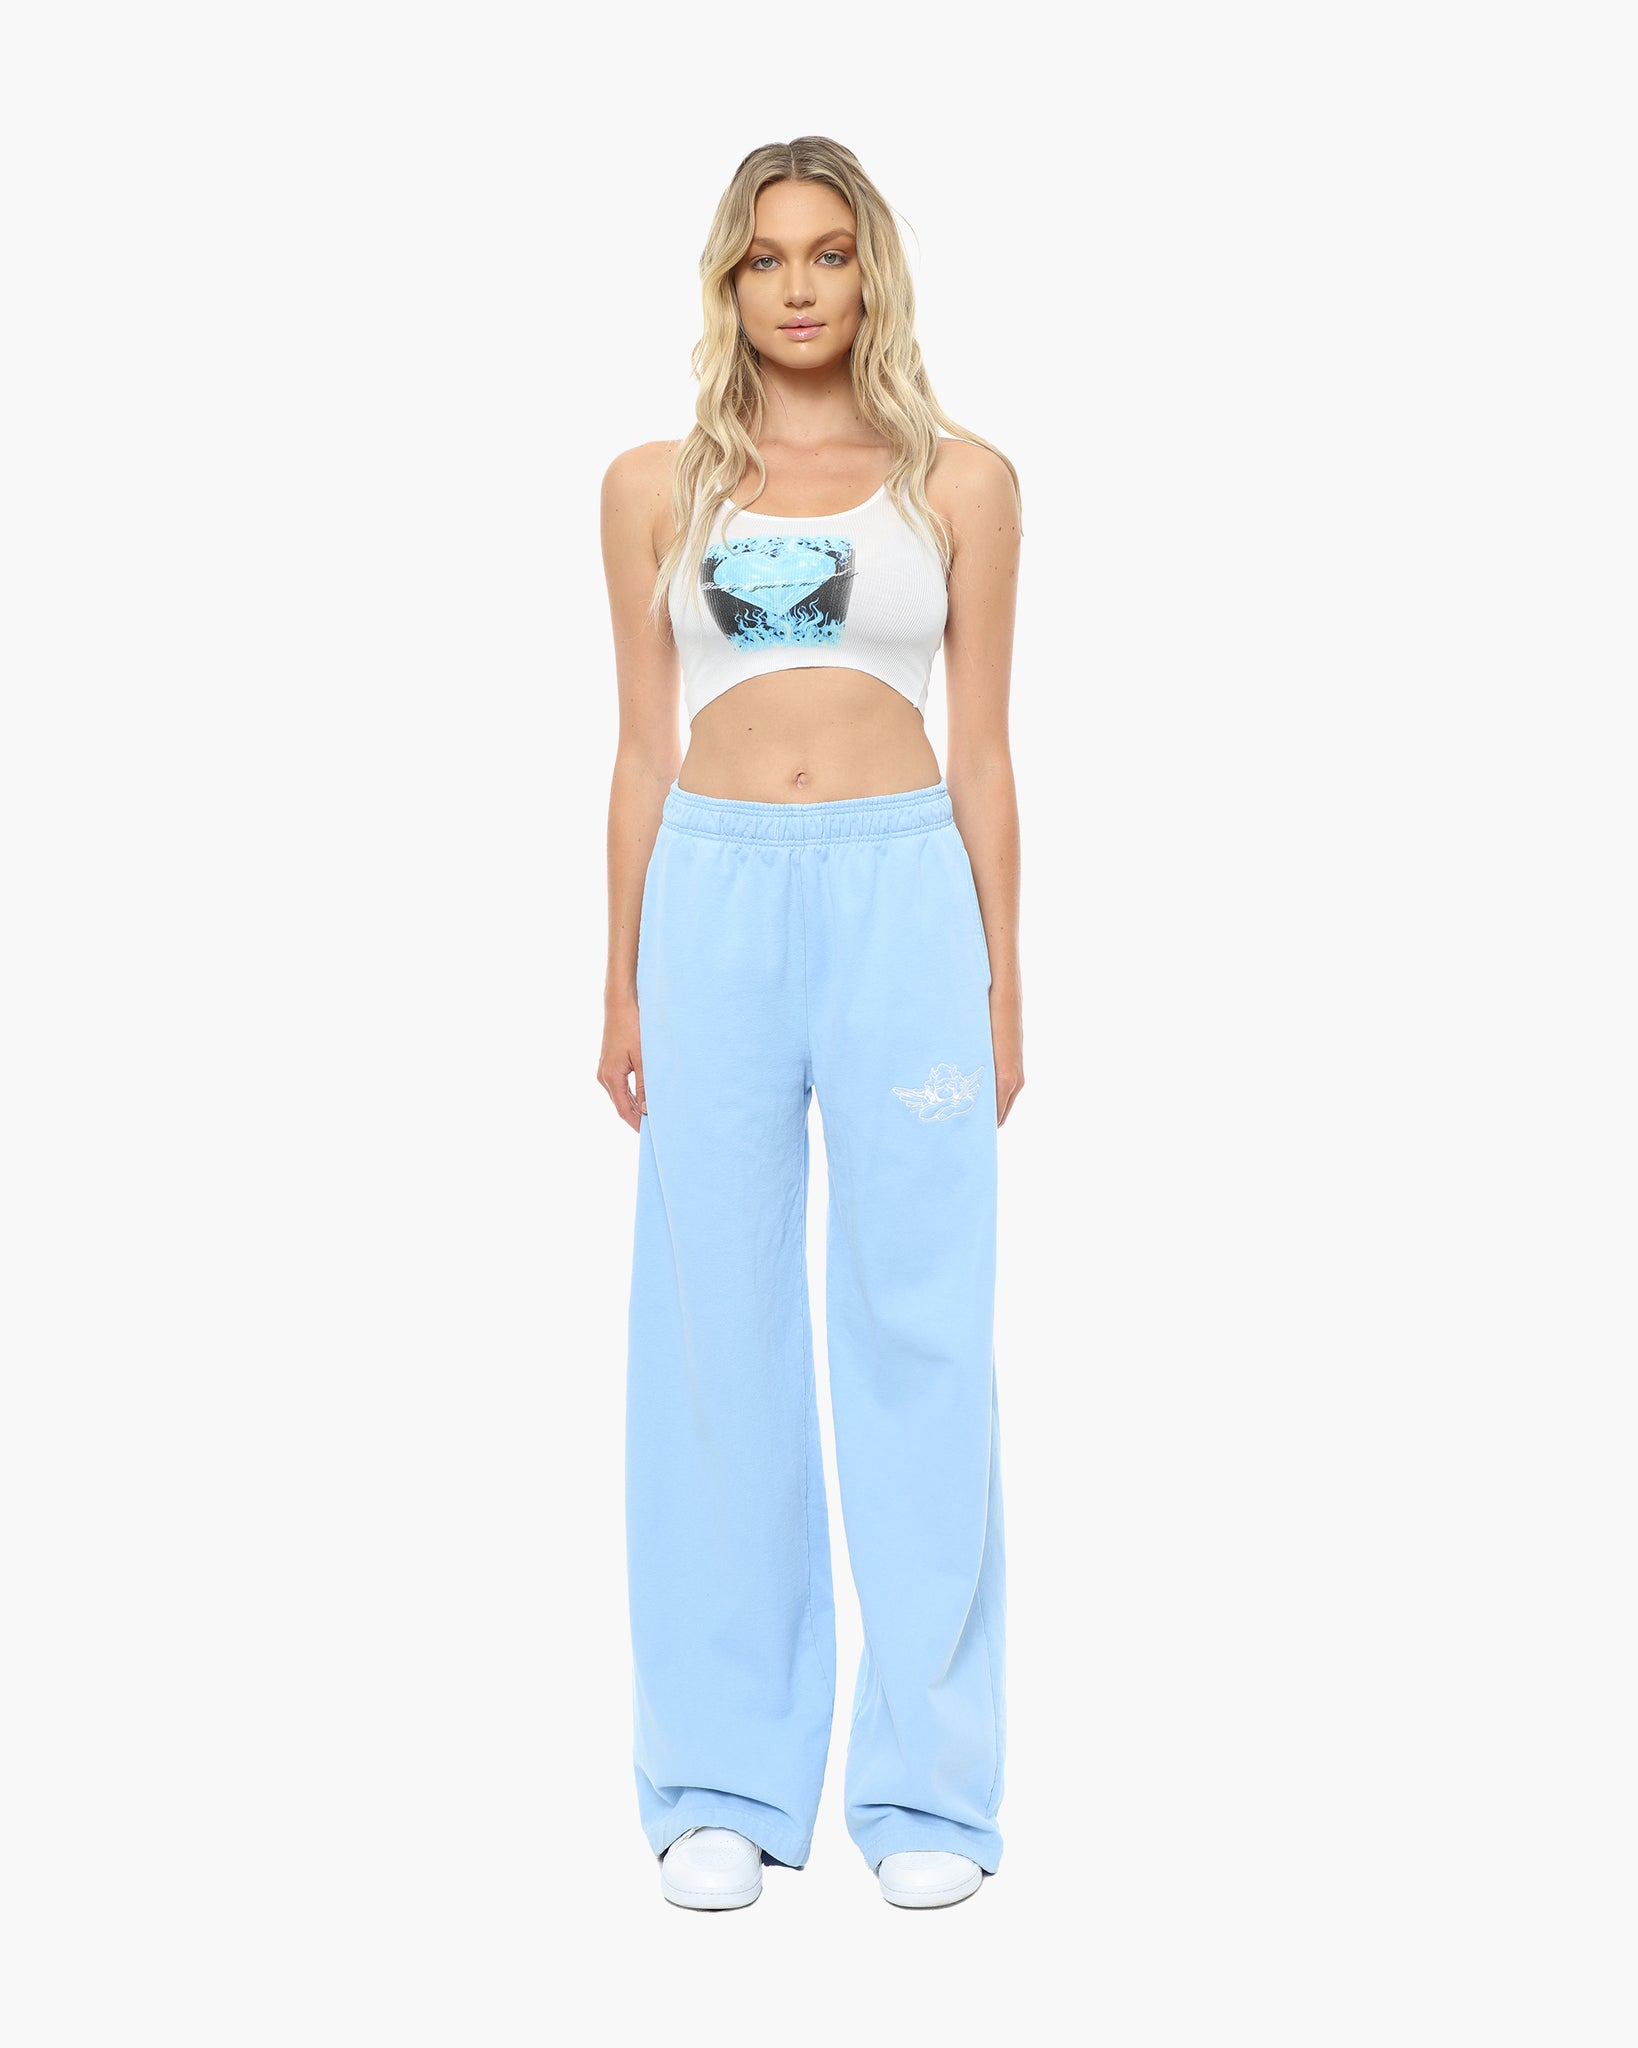 BB Blue Brady Pants